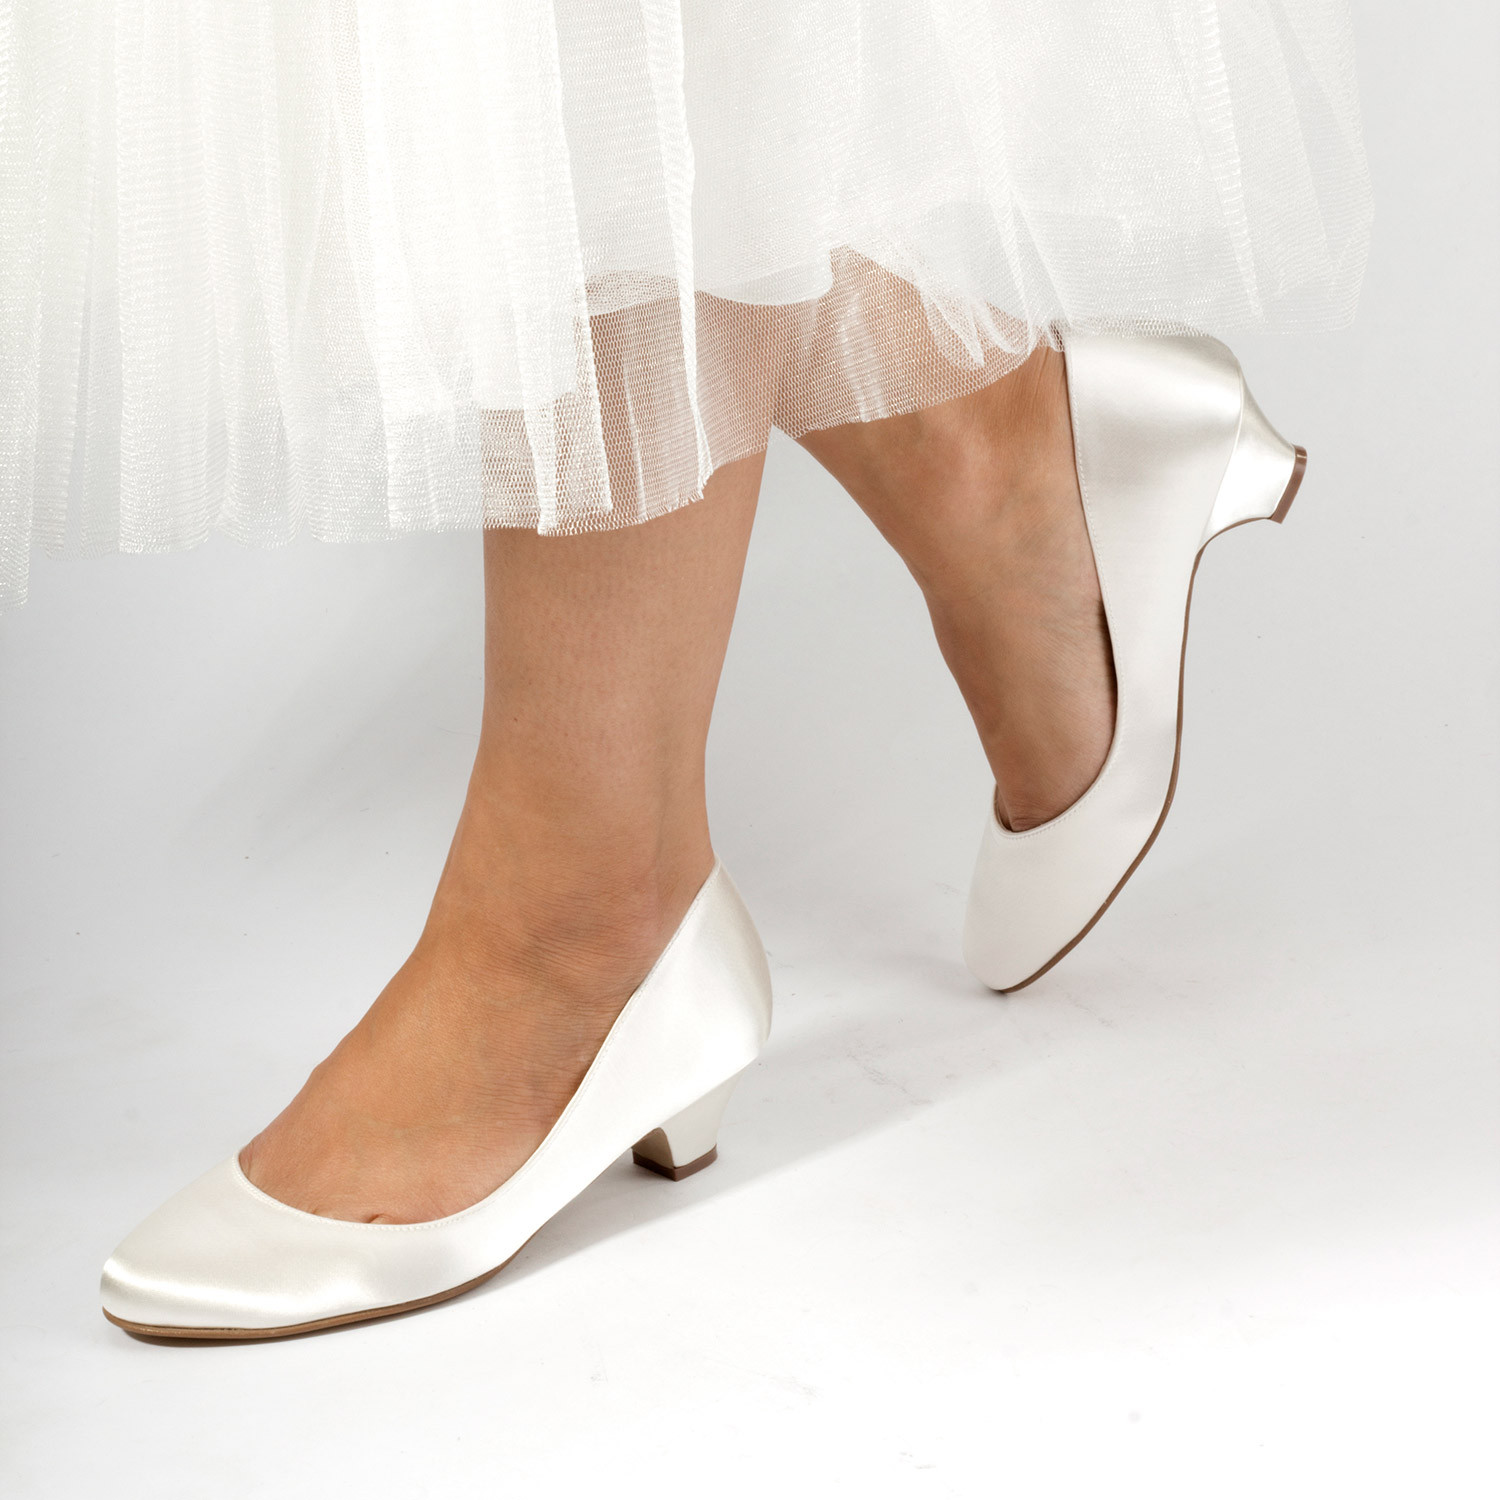 Rosemary Ivory Dyeable Wedding Shoes